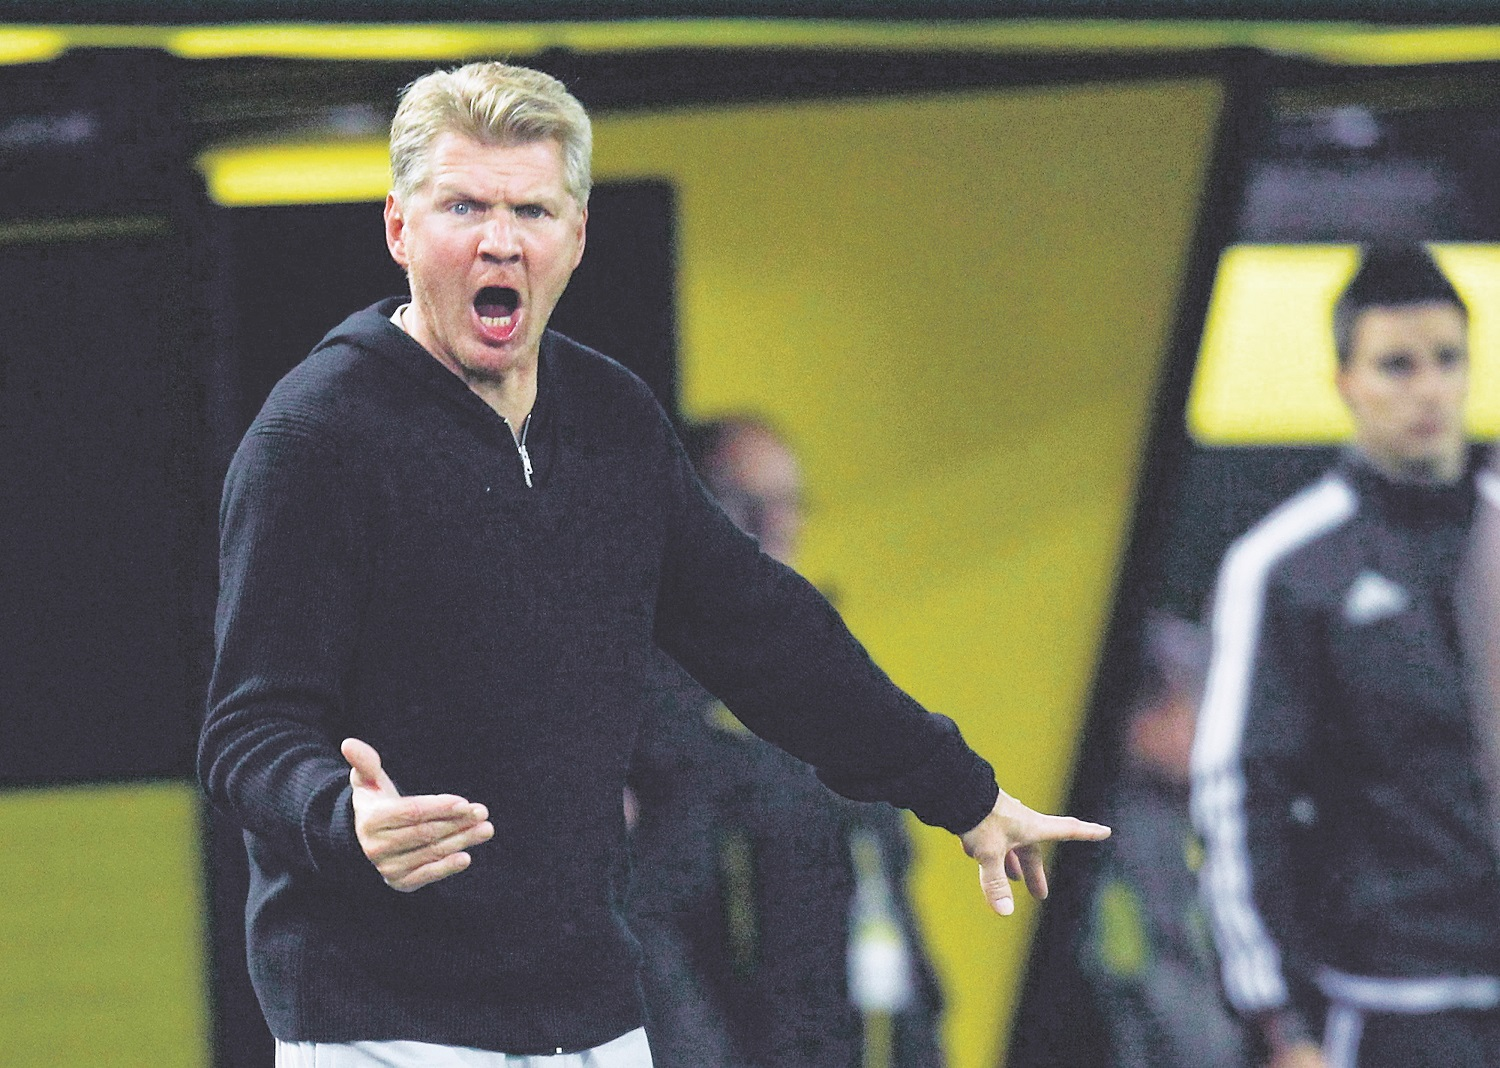 SC Paderborn's coach Stefan Effenberg gestures during their German Cup (DFB Pokal) second round soccer match against Borussia Dortmund in Dortmund, Germany, October 28, 2015.  REUTERS/Ina Fassbender     DFB RULES PROHIBIT USE IN MMS SERVICES VIA HANDHELD DEVICES UNTIL TWO HOURS AFTER A MATCH AND ANY USAGE ON INTERNET OR ONLINE MEDIA SIMULATING VIDEO FOOTAGE DURING THE MATCH.